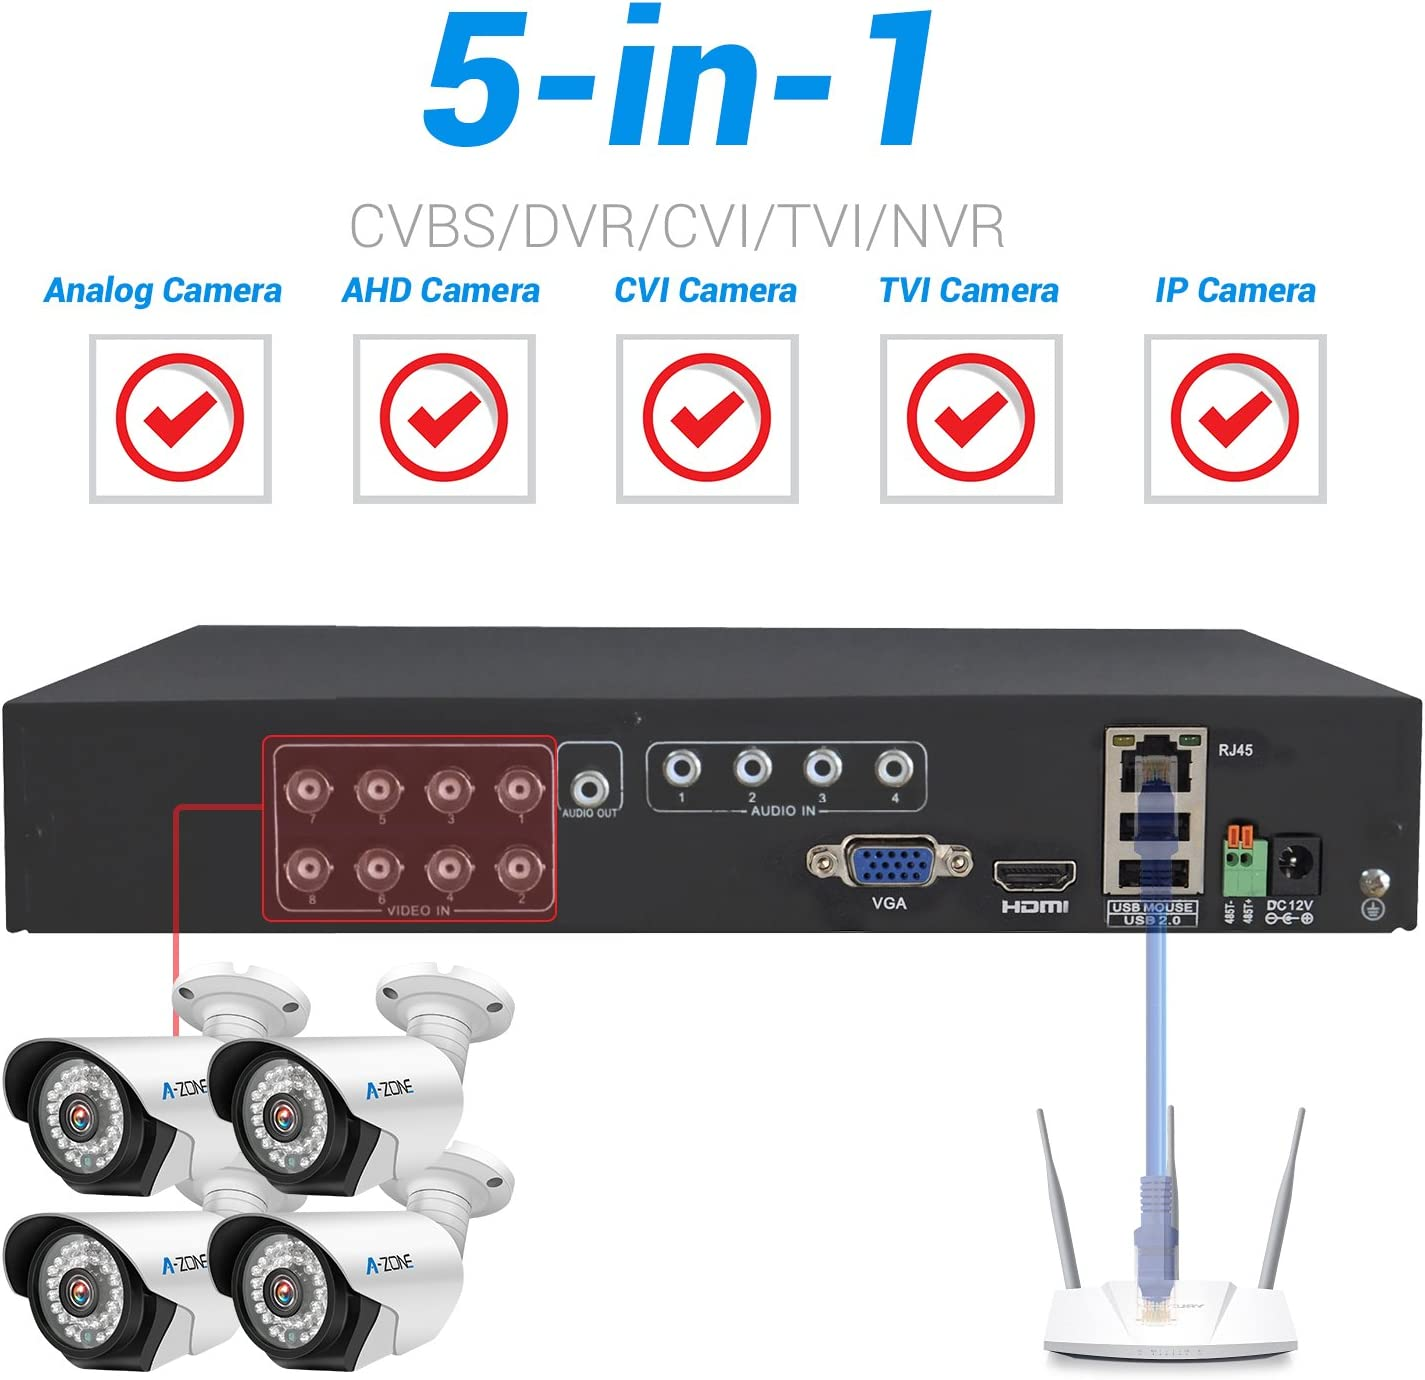 A-ZONE 8Channel 1080P AHD/TVI/CVI/CVBS/IP 5-in-1 DVR Home Security System